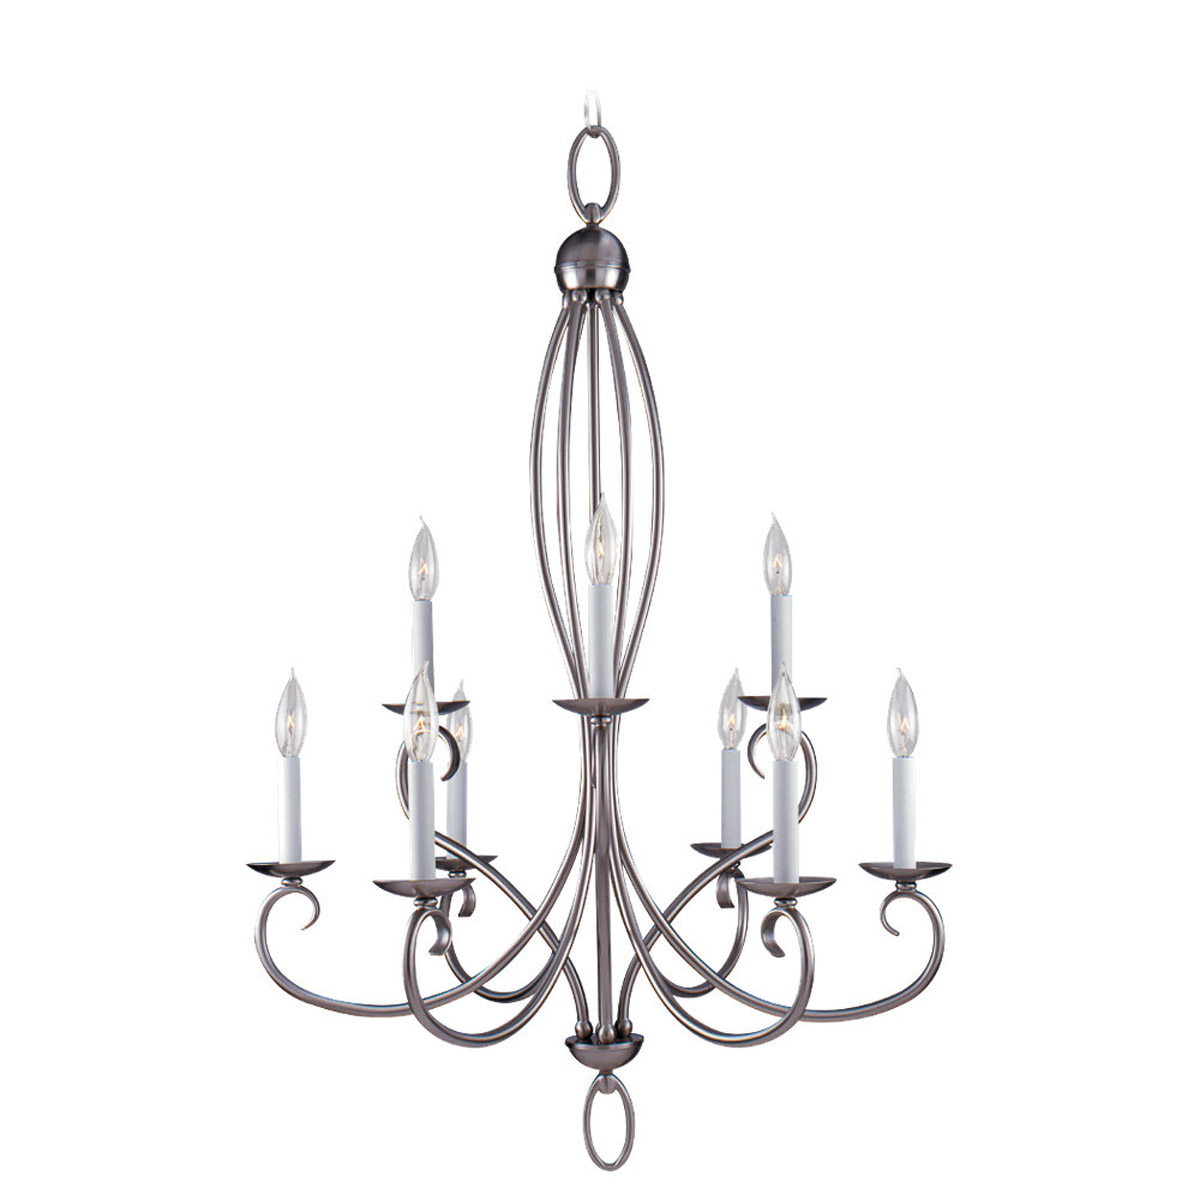 Sea Gull Lighting Pemberton 9 Light Chandelier in Brushed Nickel 31075-962 photo